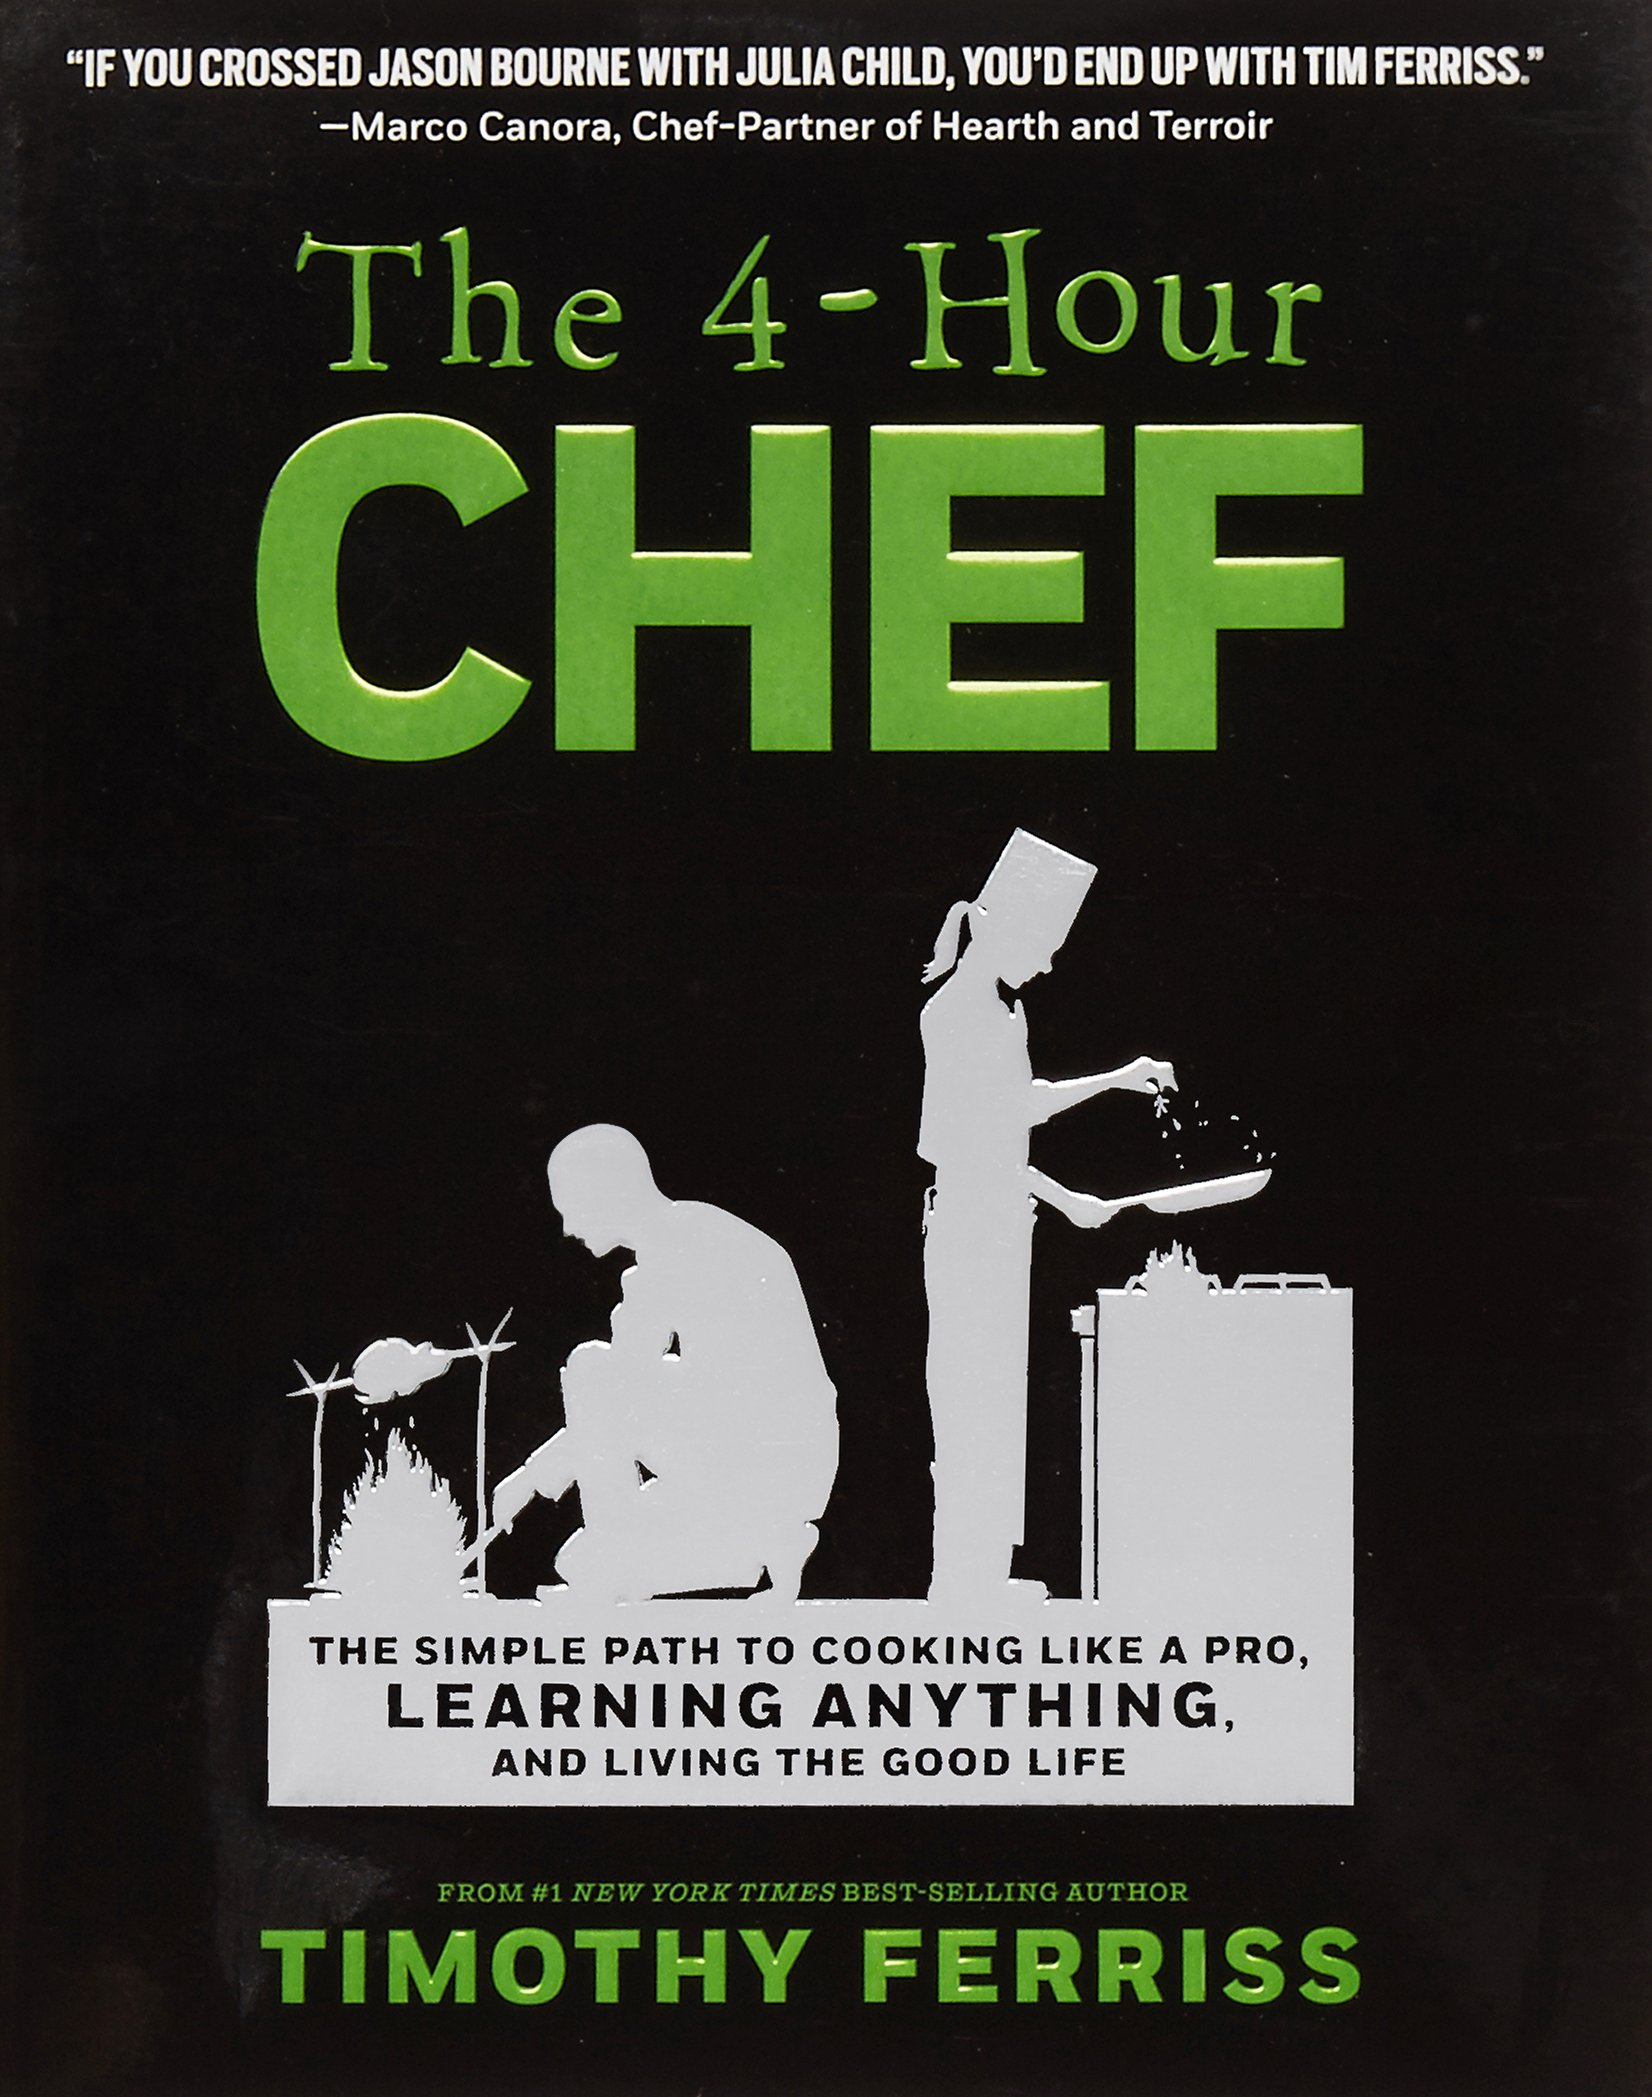 The 4-Hour Chef: The Simple Path to Cooking Like a Pro, Learning ...